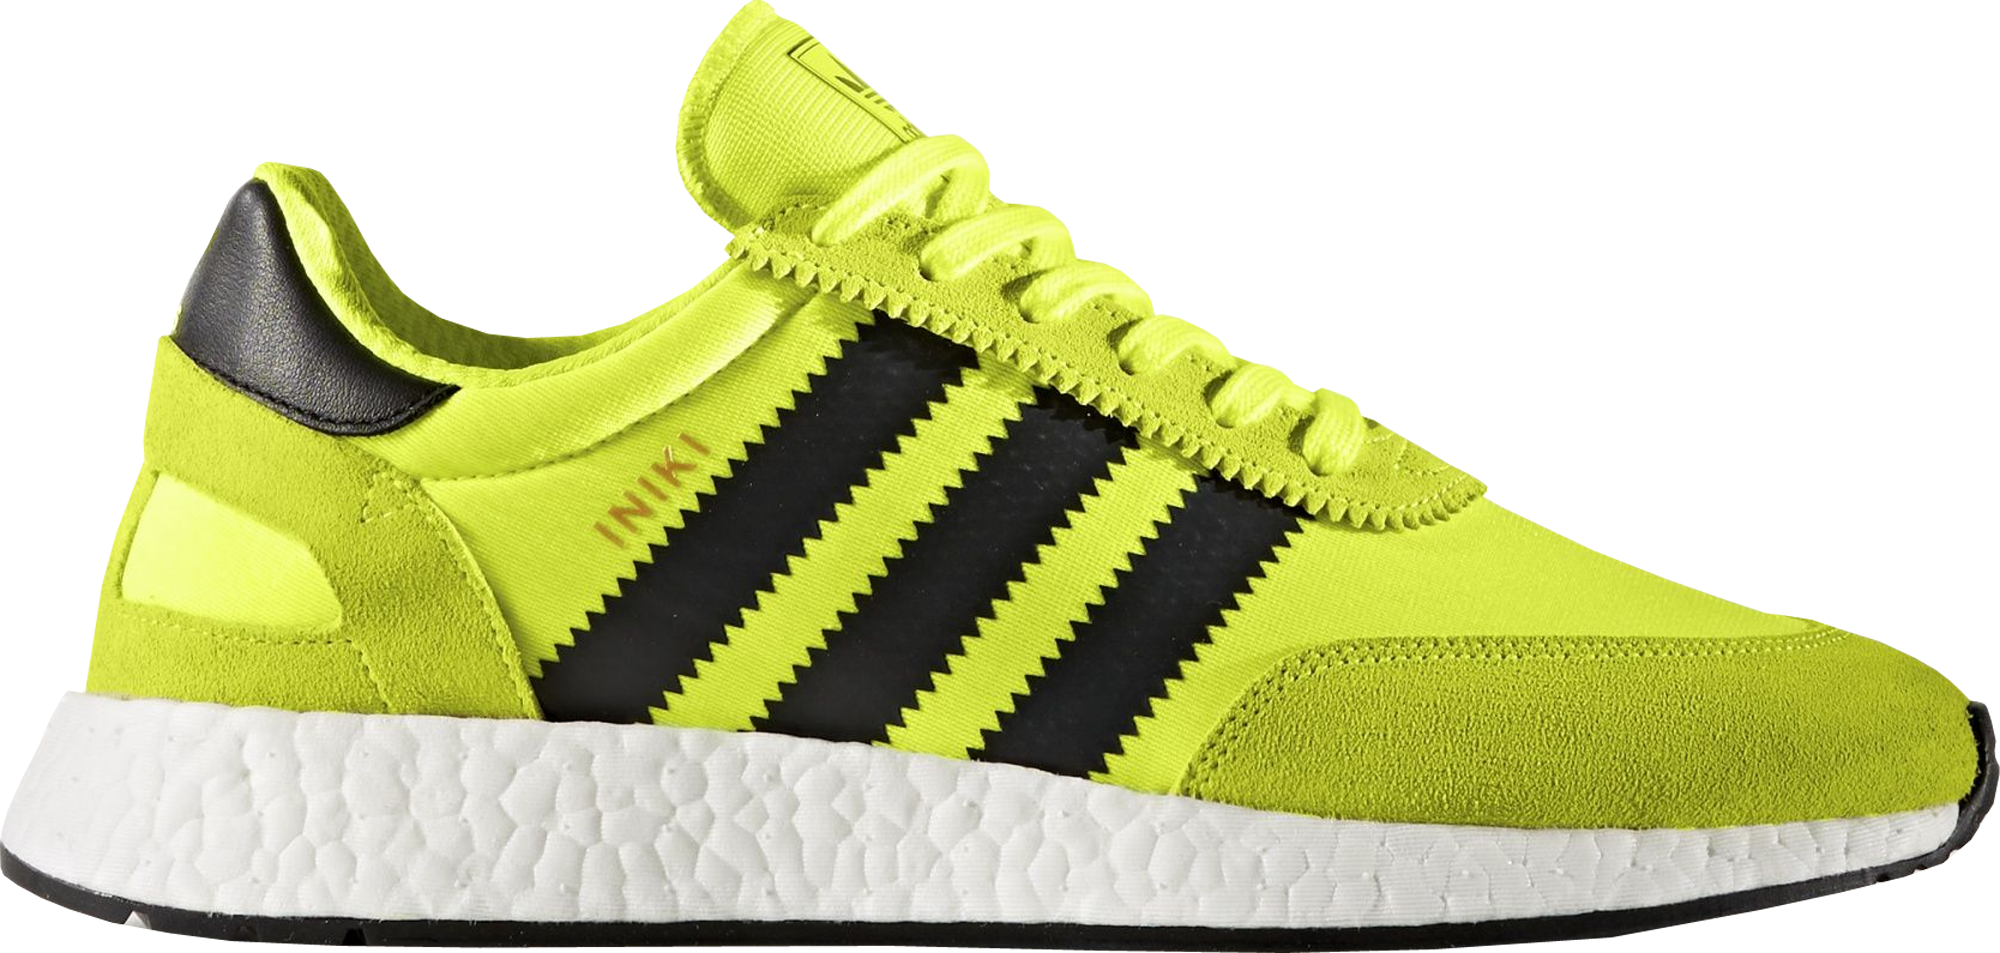 adidas Iniki Runner Solar Yellow